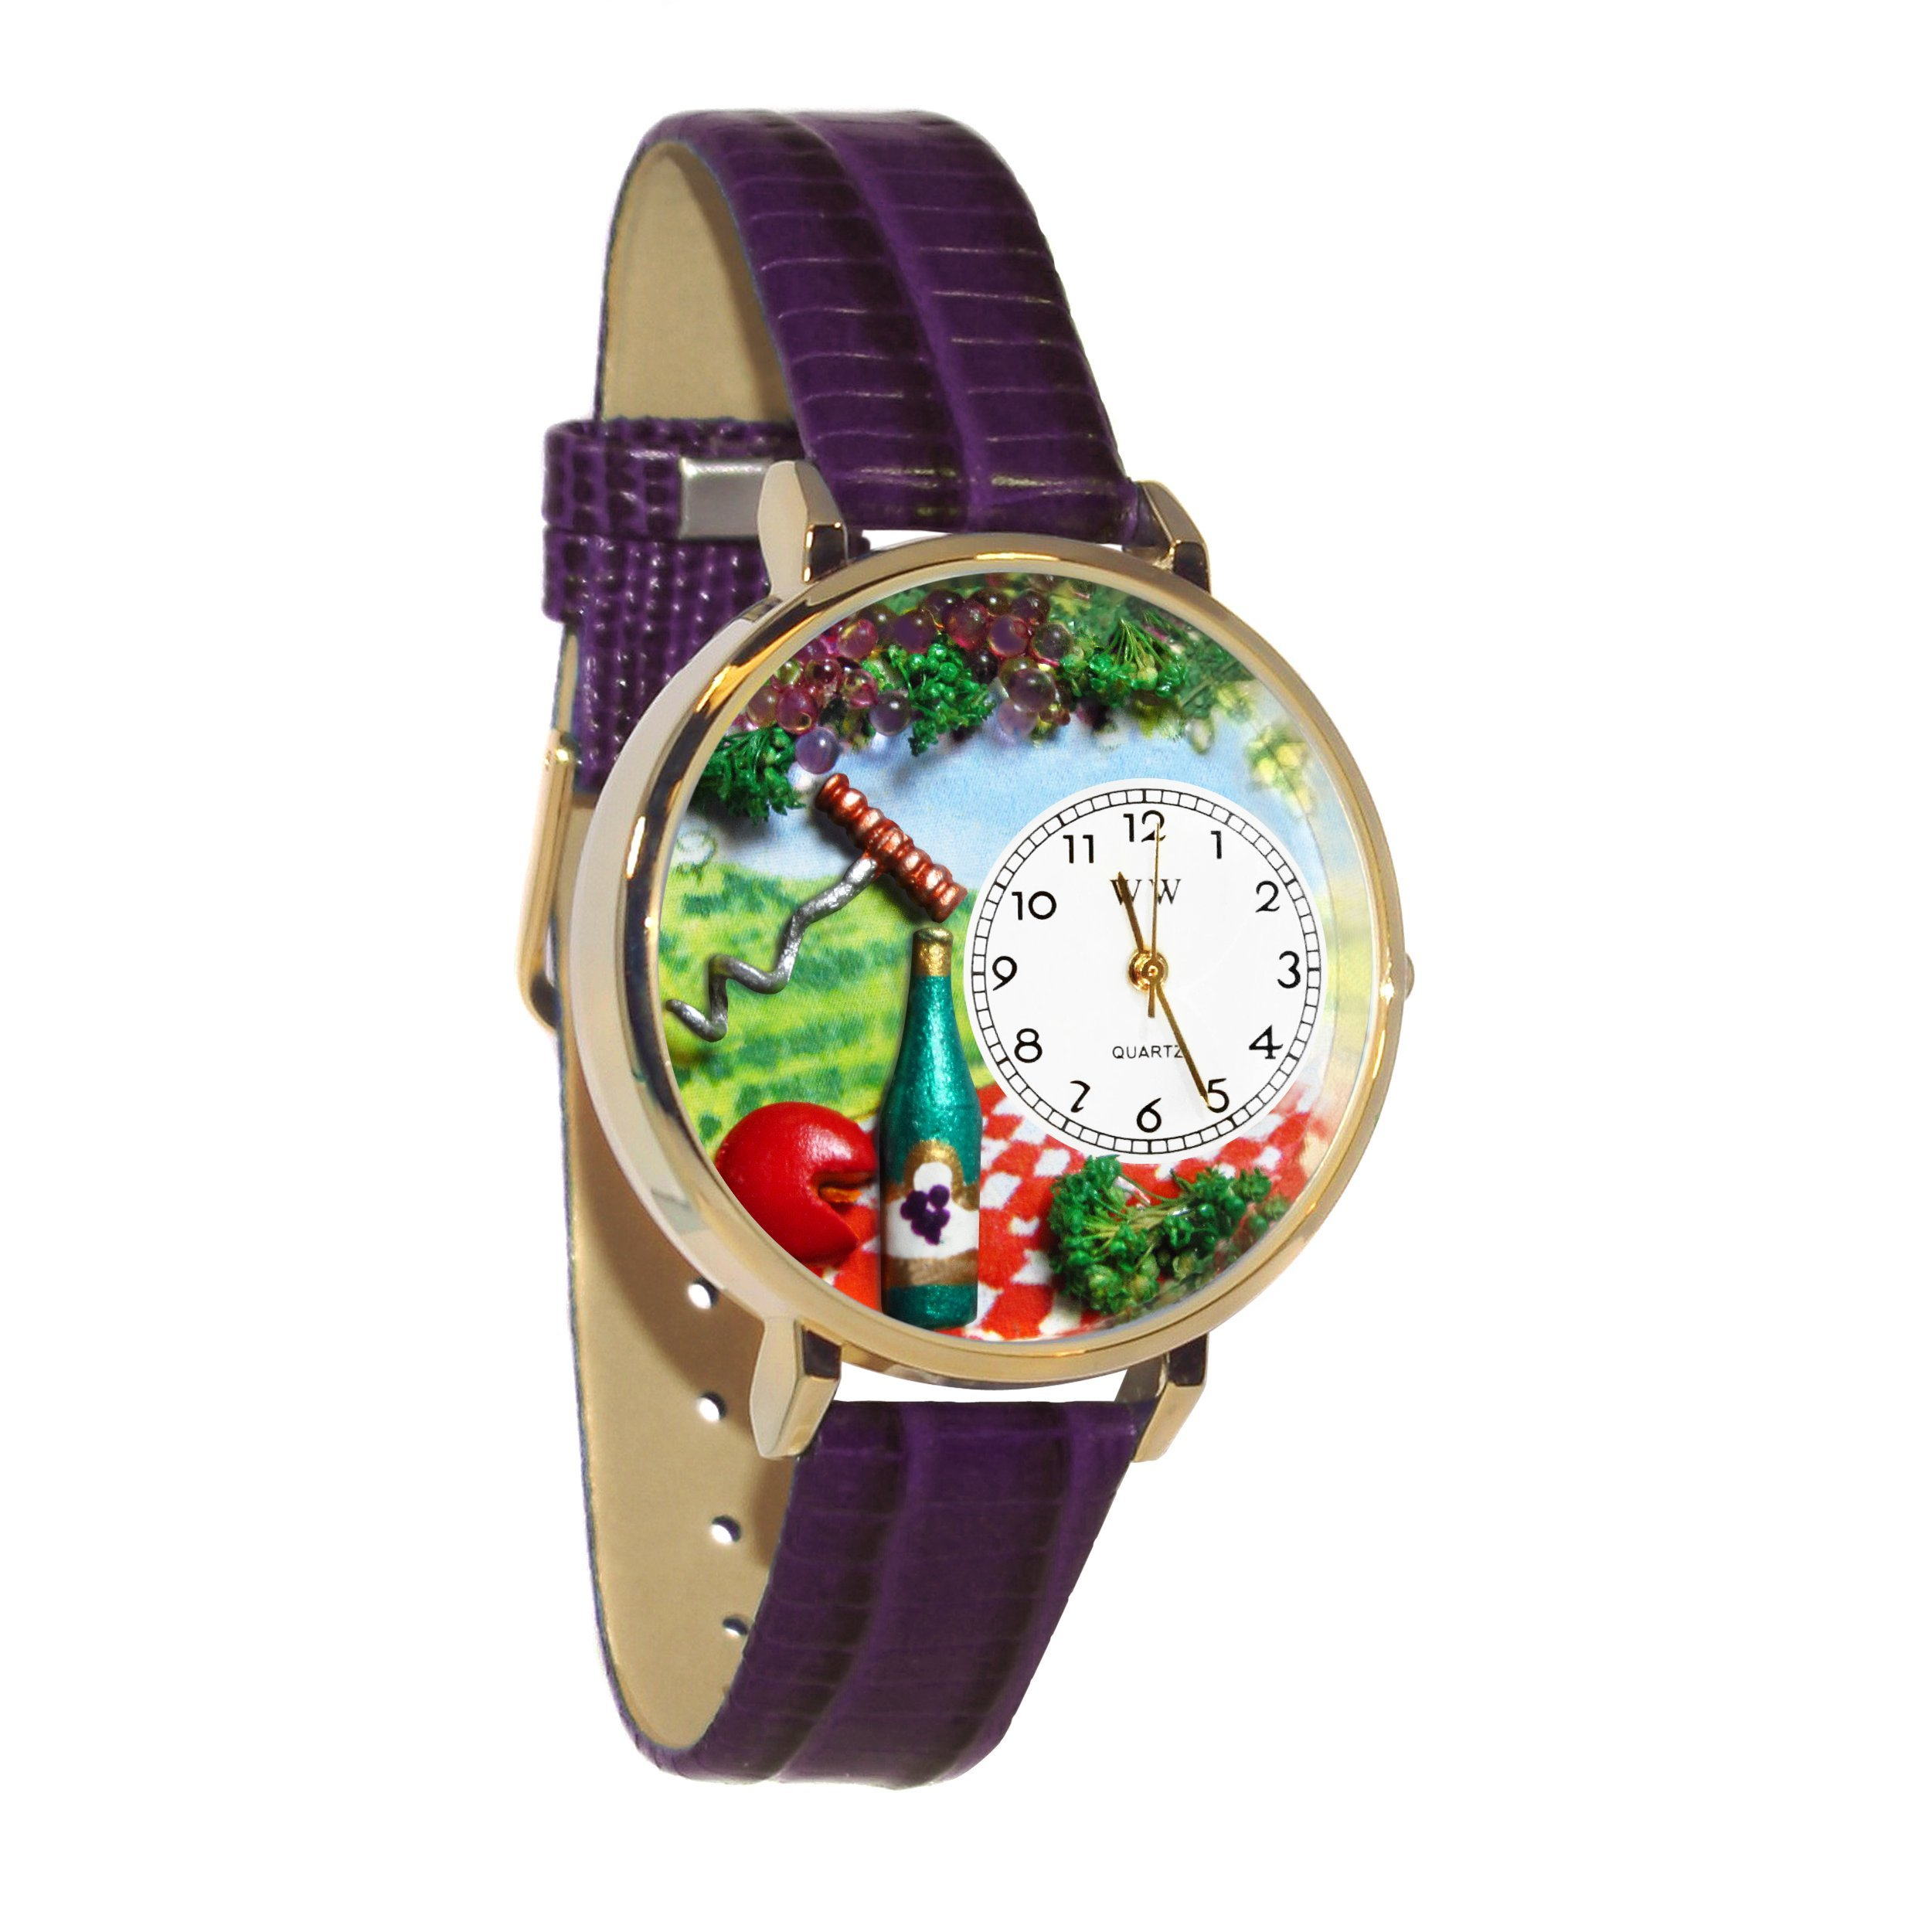 Wine & Cheese Purple Leather And Goldtone Watch #WG-G0310010